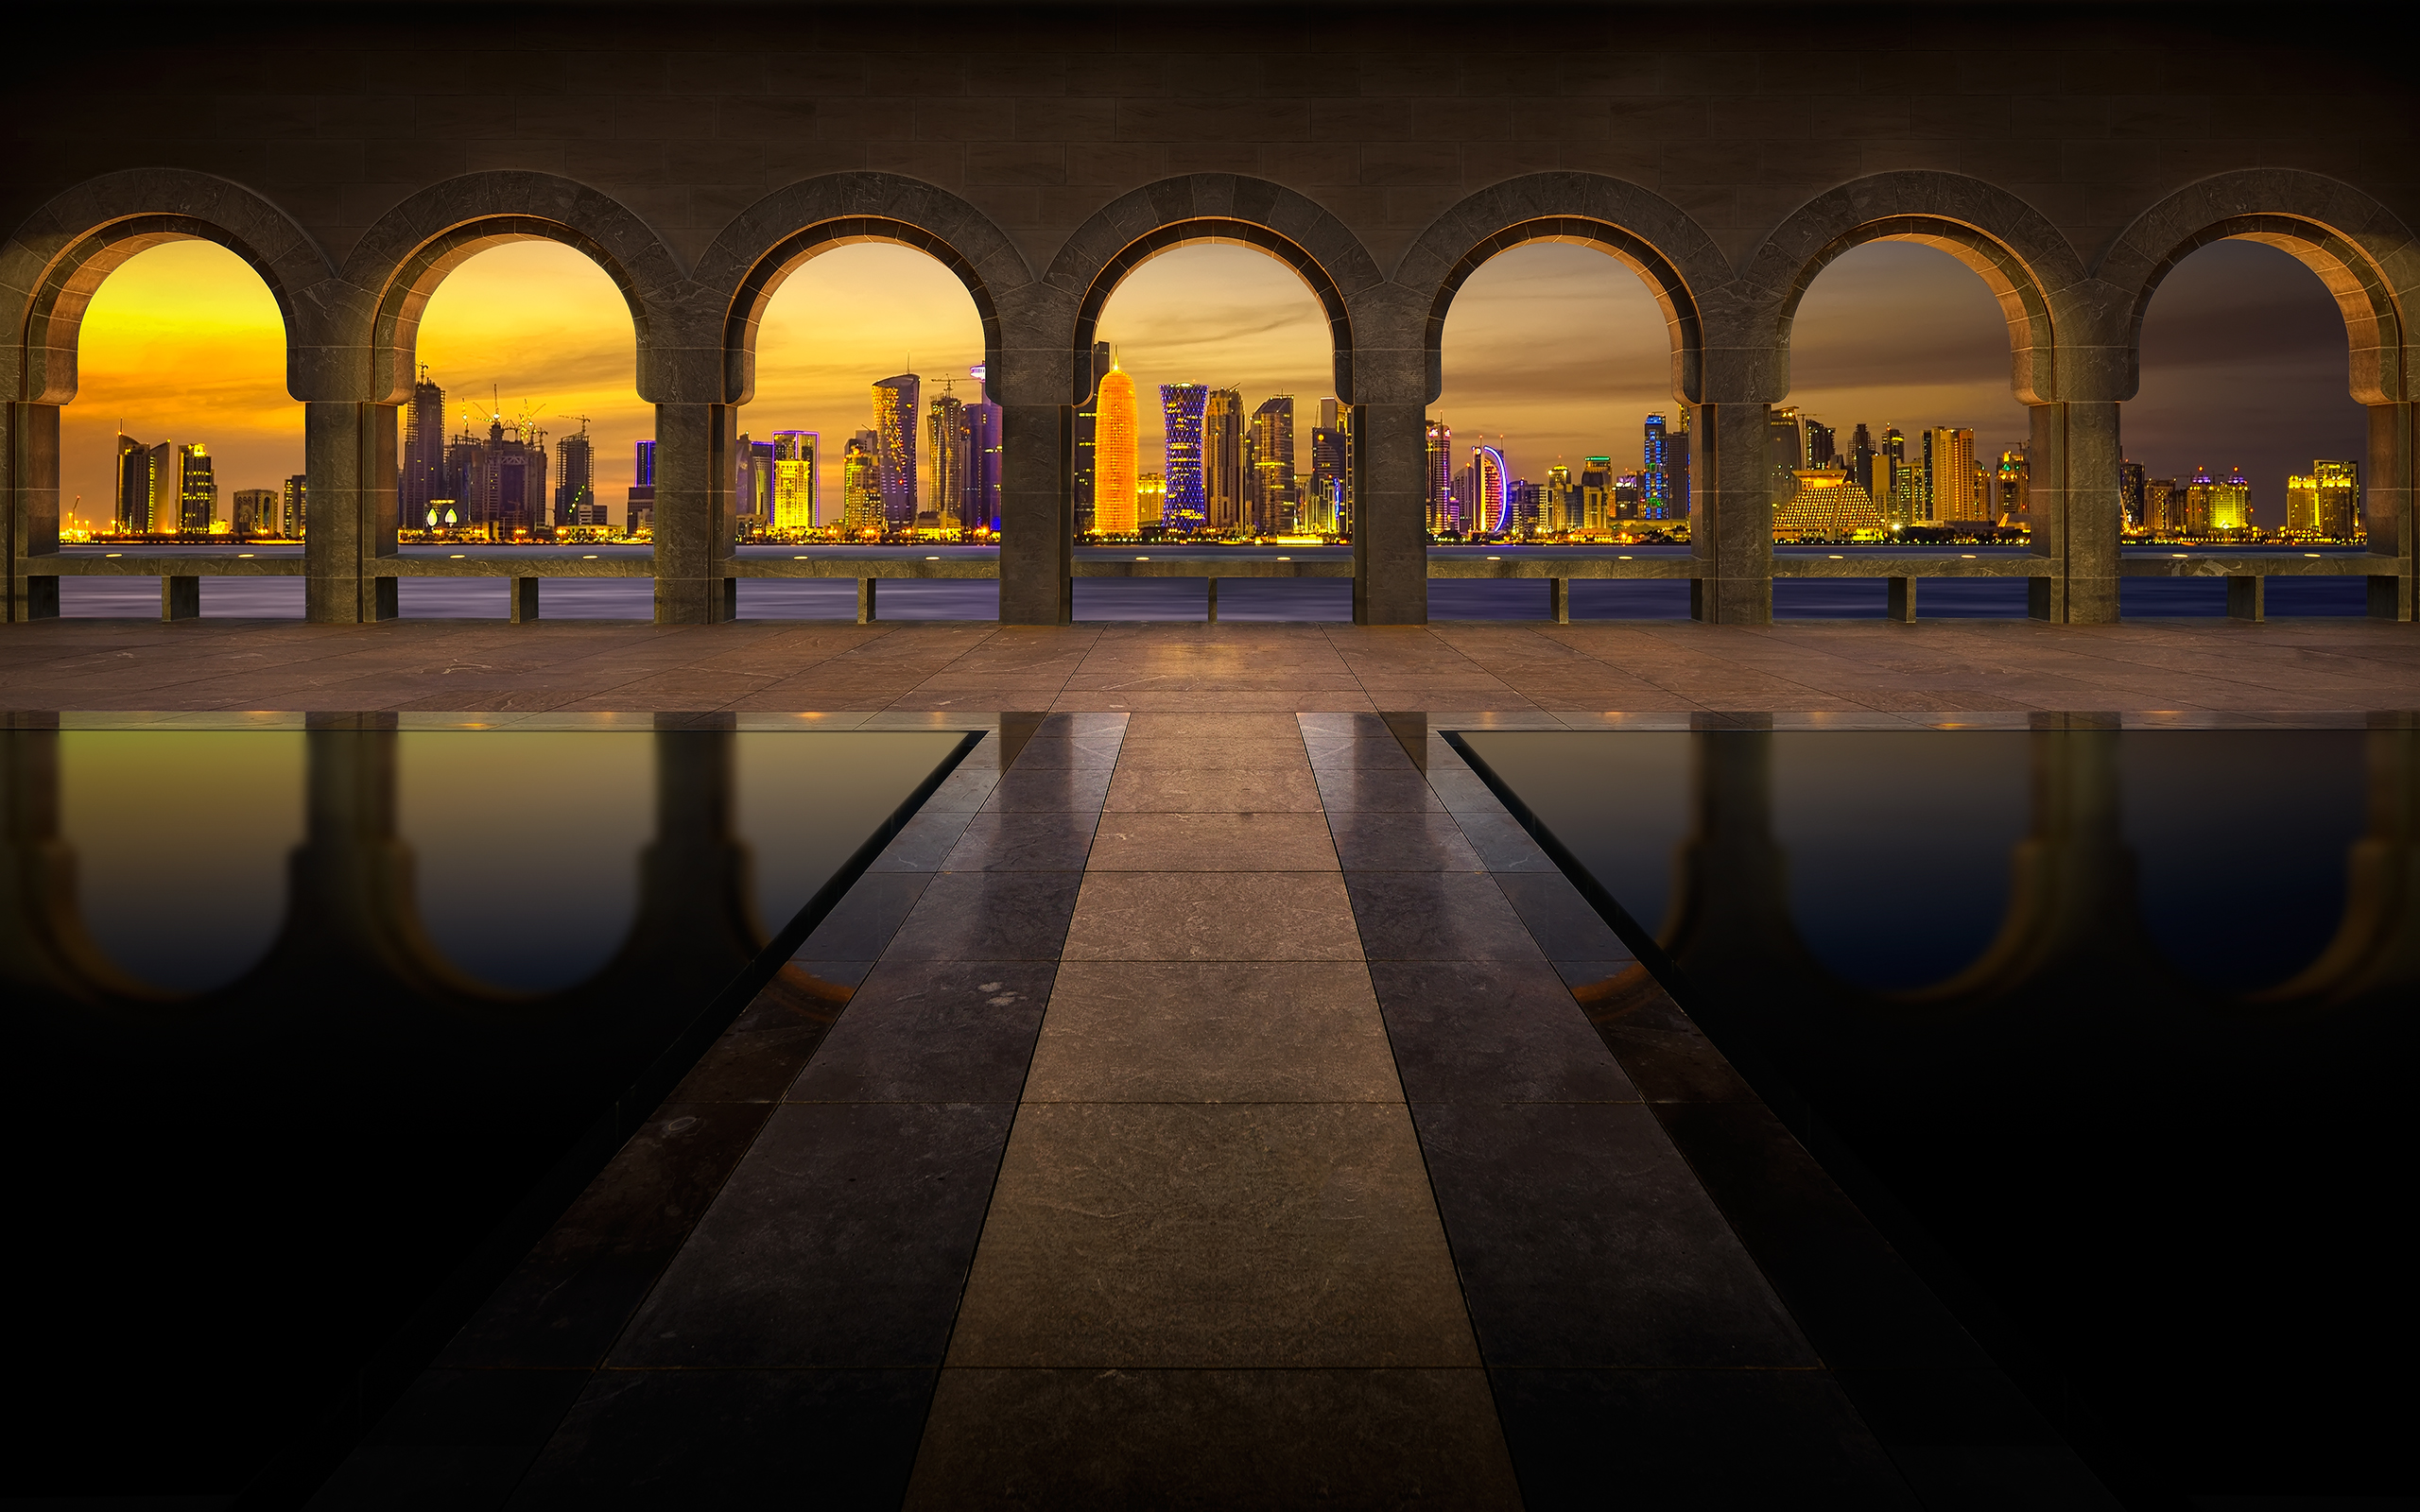 By Luisa Hays - Qatar Wallpapers, 2560x1600 px